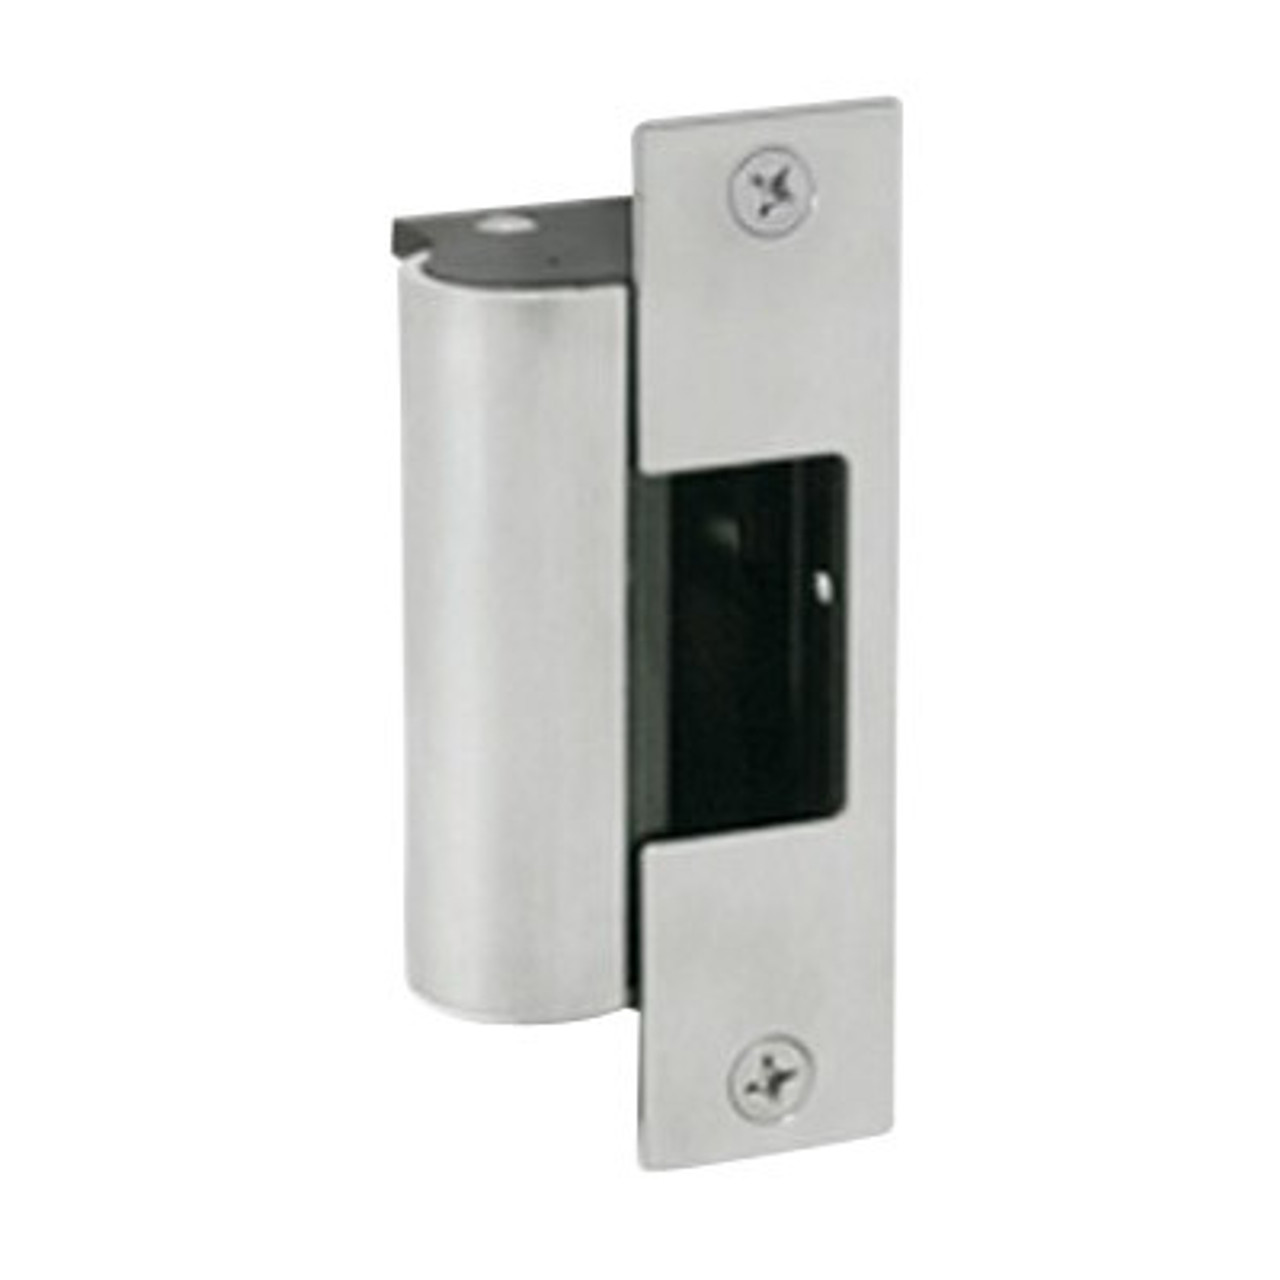 1006CDB-F-630 Hes 1006 Series Complete Electric Strike for Deadbolt Lock in Satin Stainless Finish